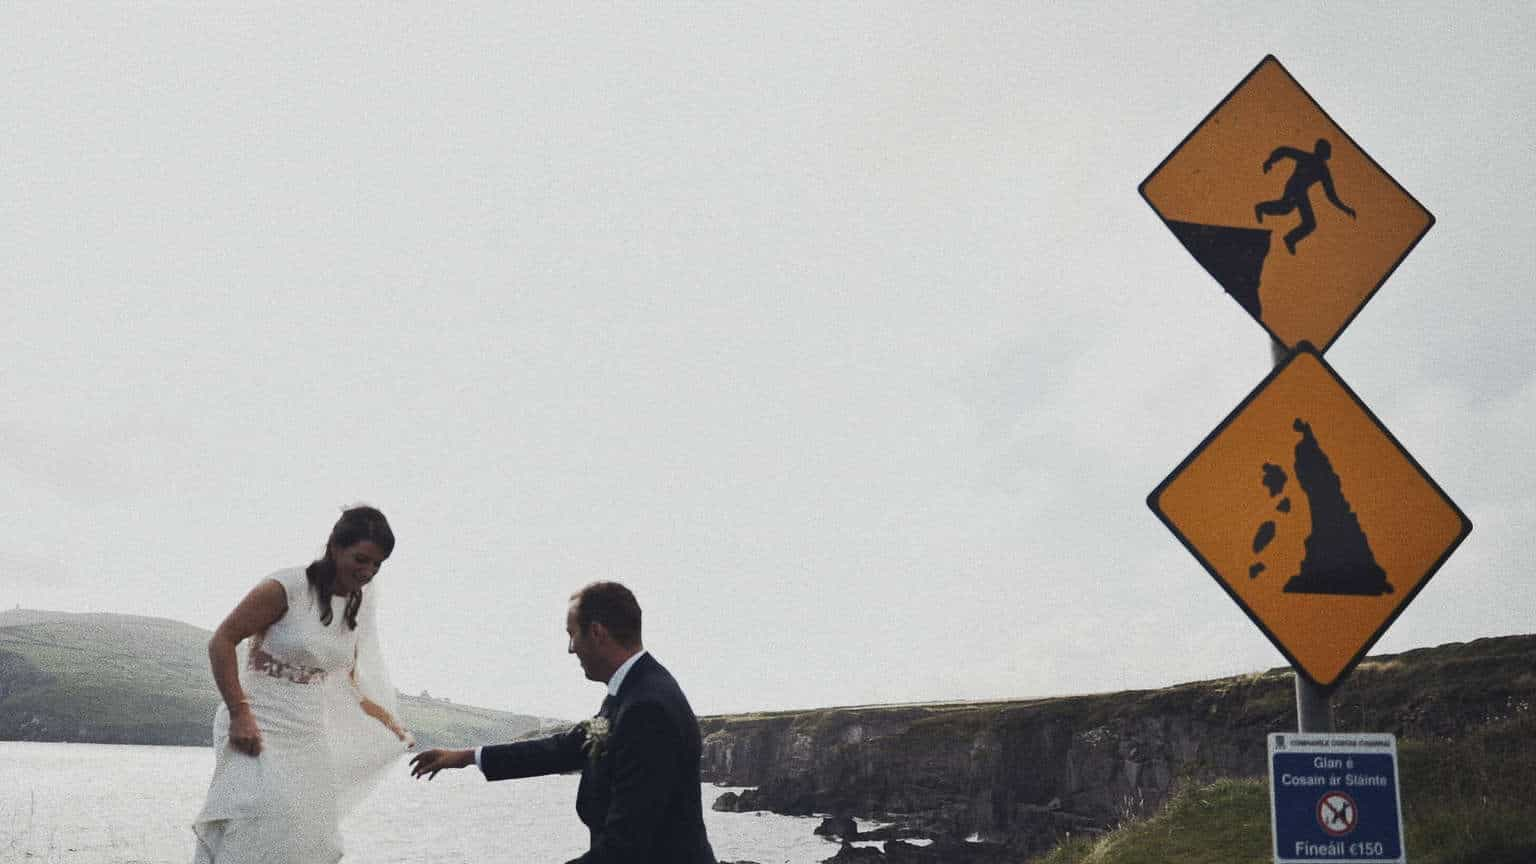 Bride and groom coming down from danger cliffs during wedding photo .